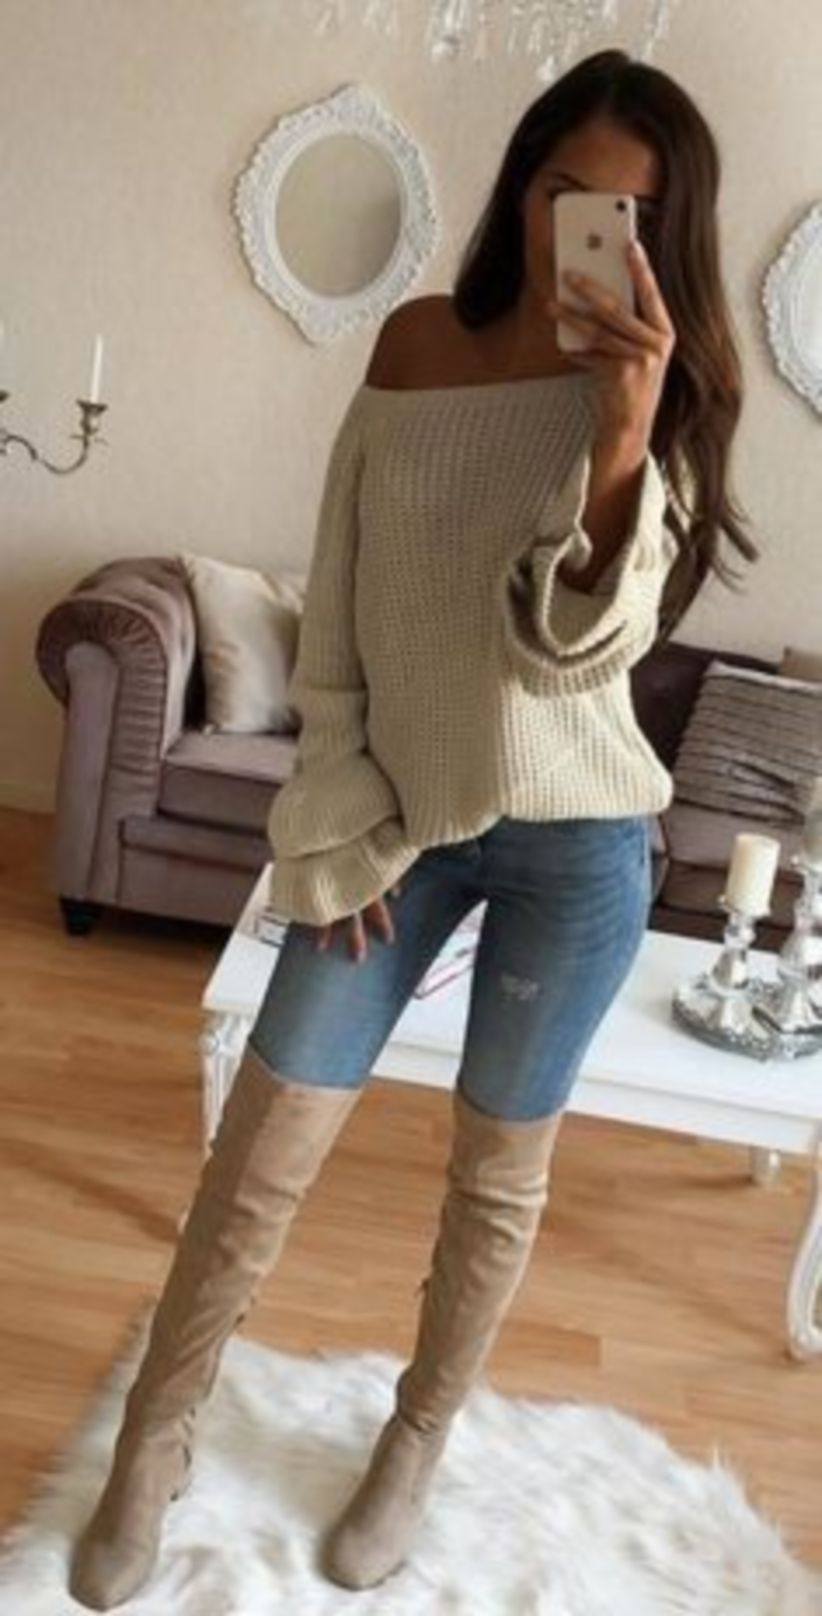 20 Cute Fall Outfit Ideas 20   lavvline.com   Trendy fall ...